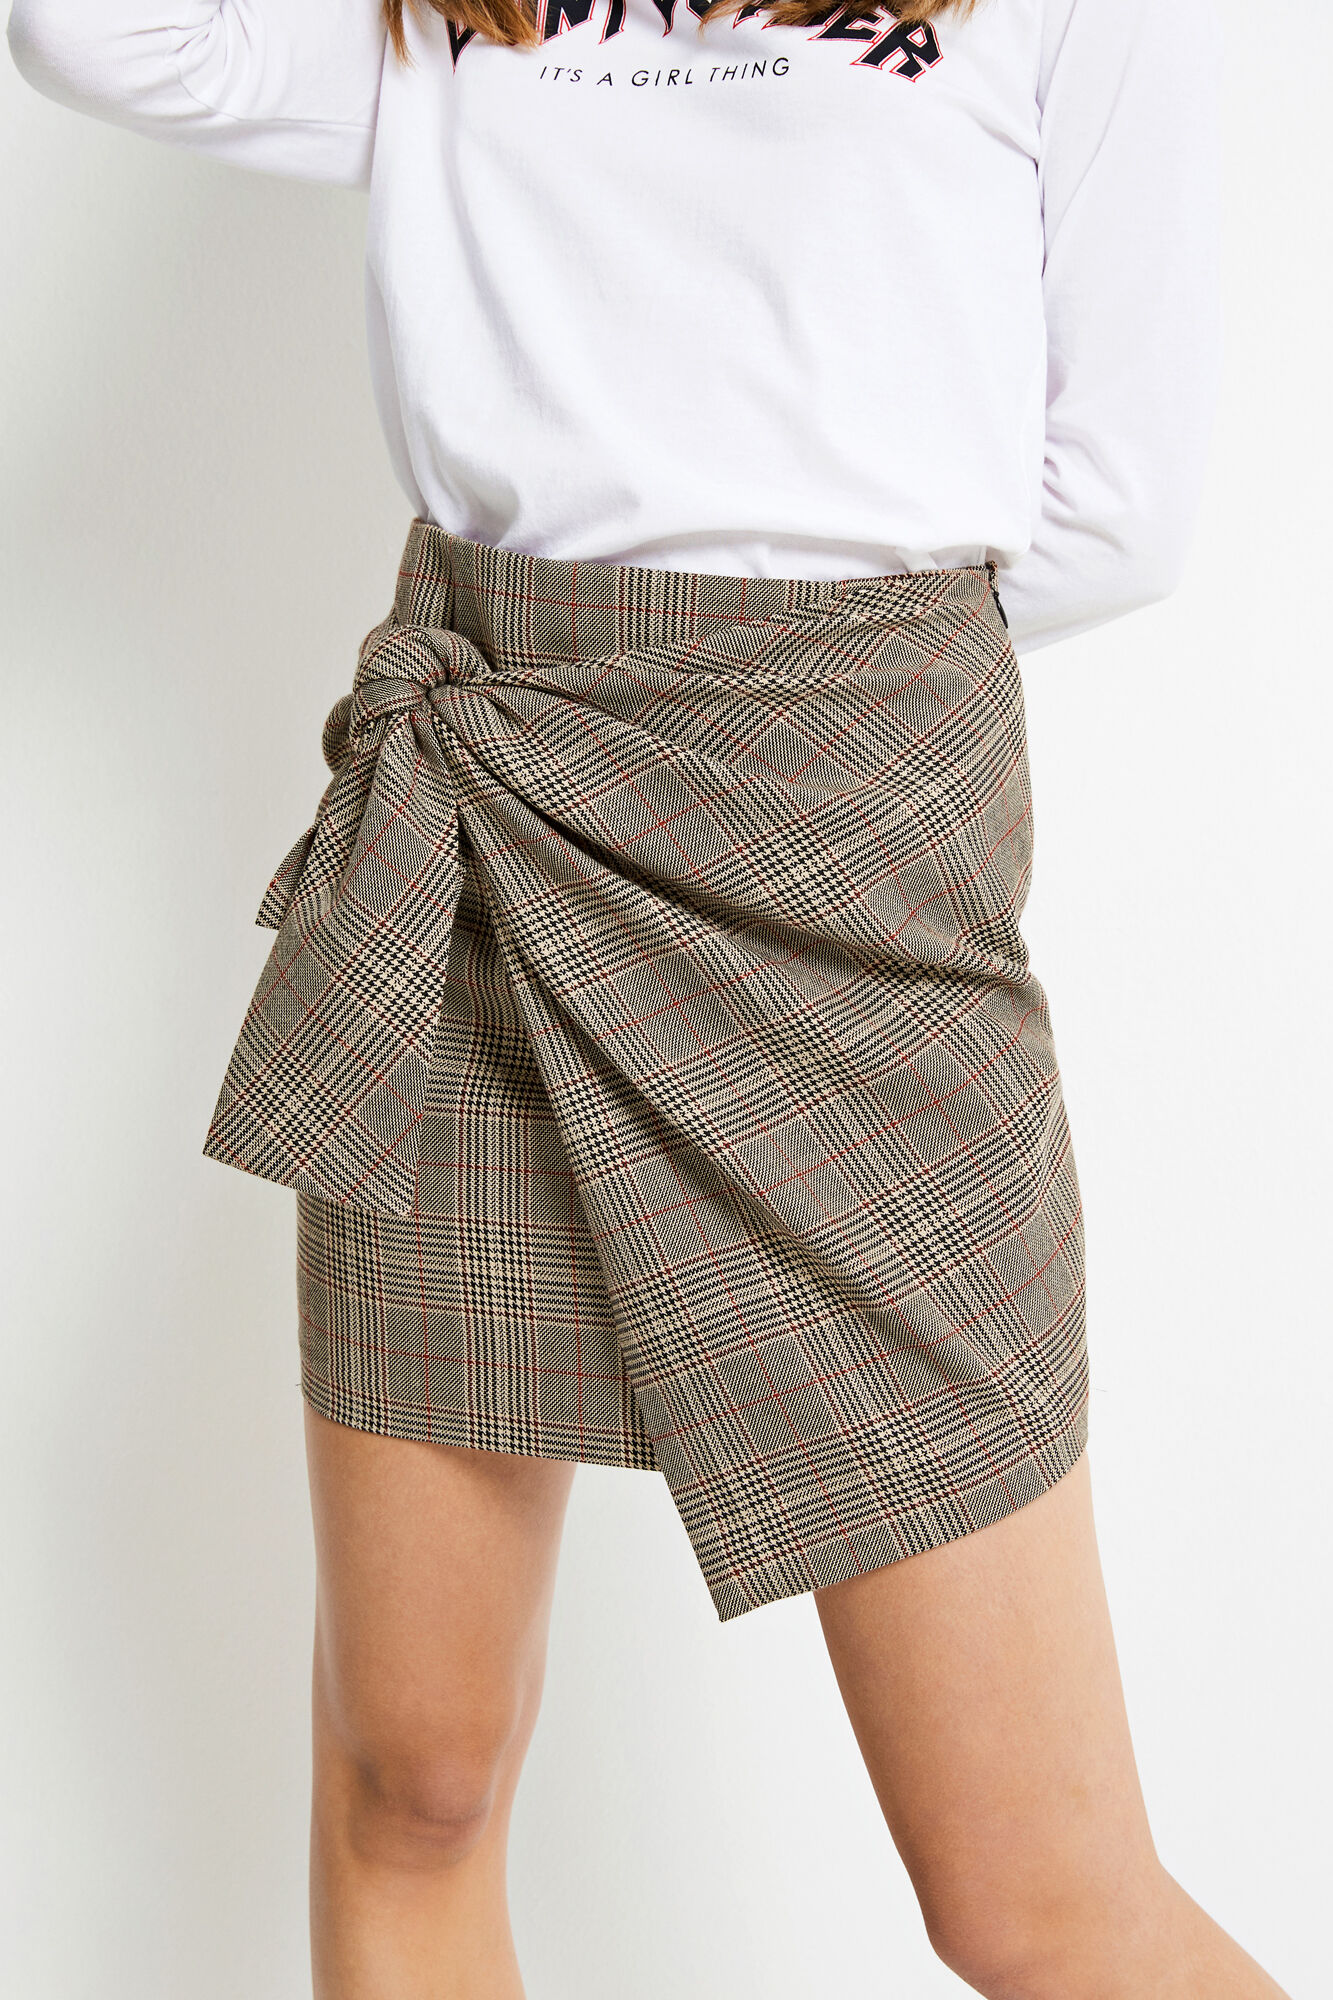 ENAMBER SKIRT CHECK 6472, TWEED CHECK